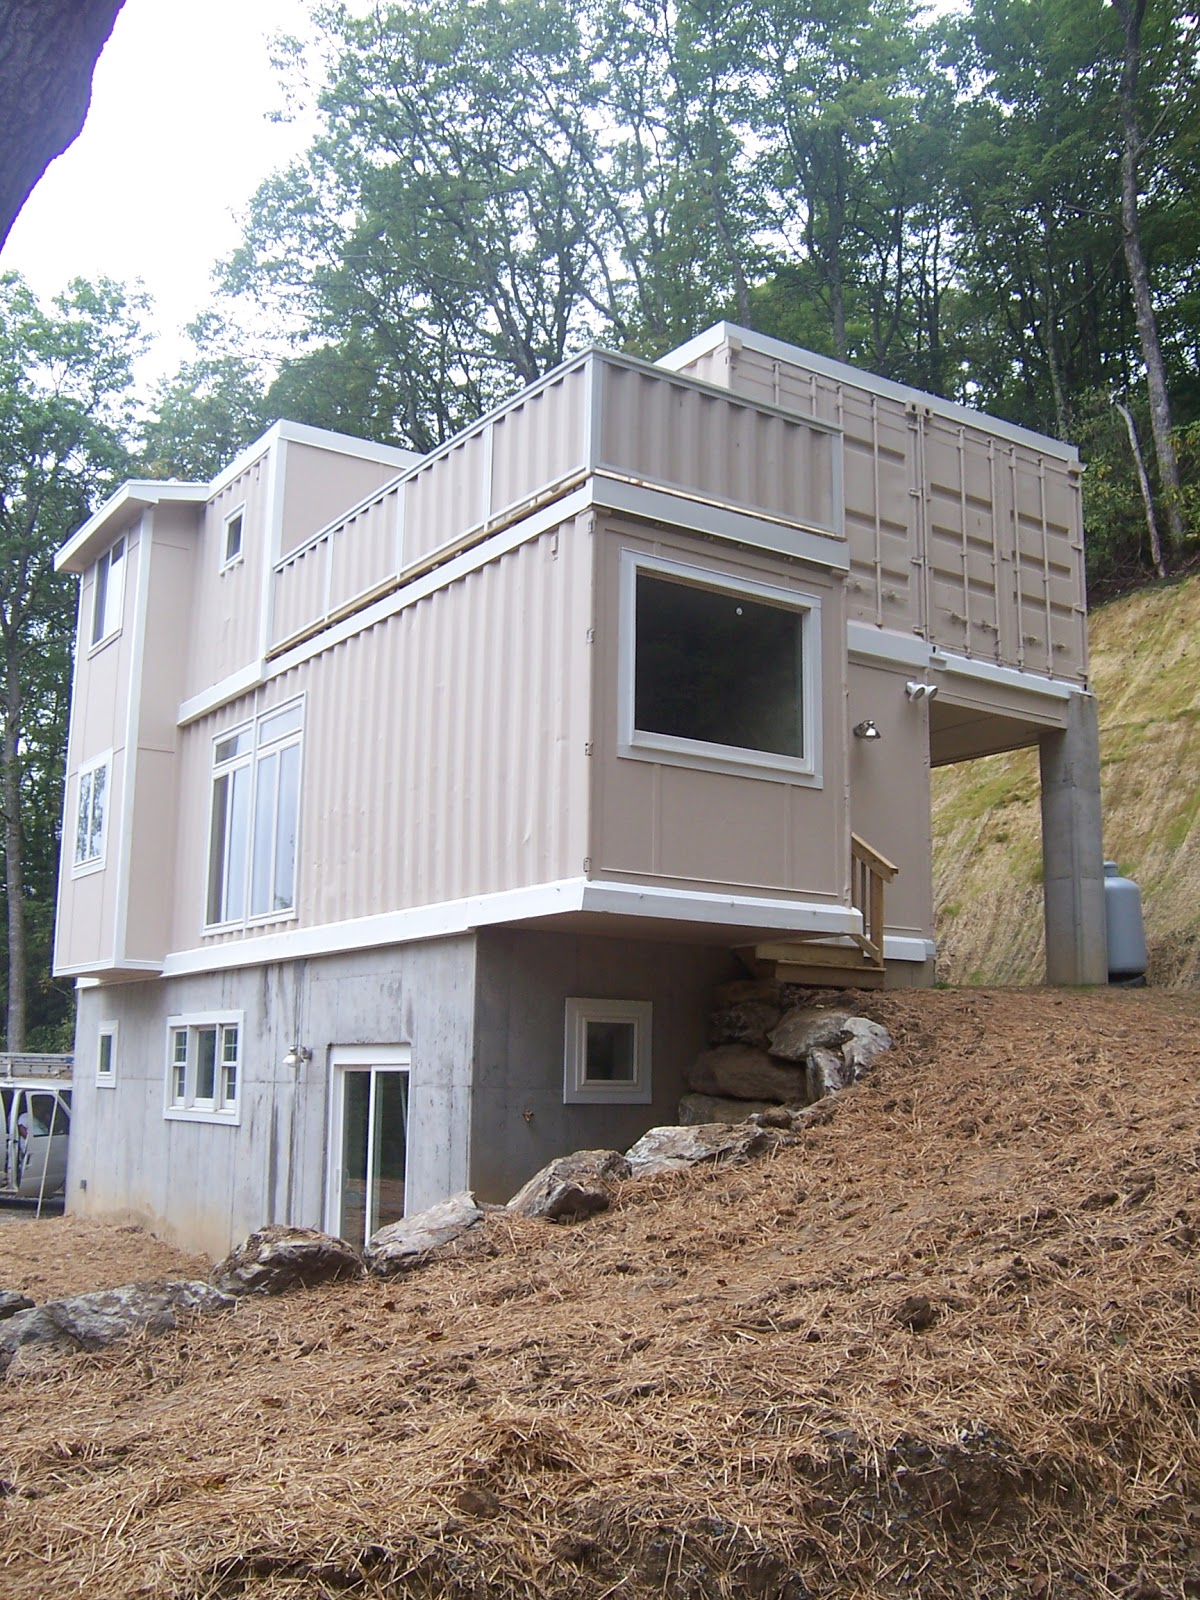 Shipping container homes high country green boxes dwellbox boone north carolina 5 - Container home plans for sale ...